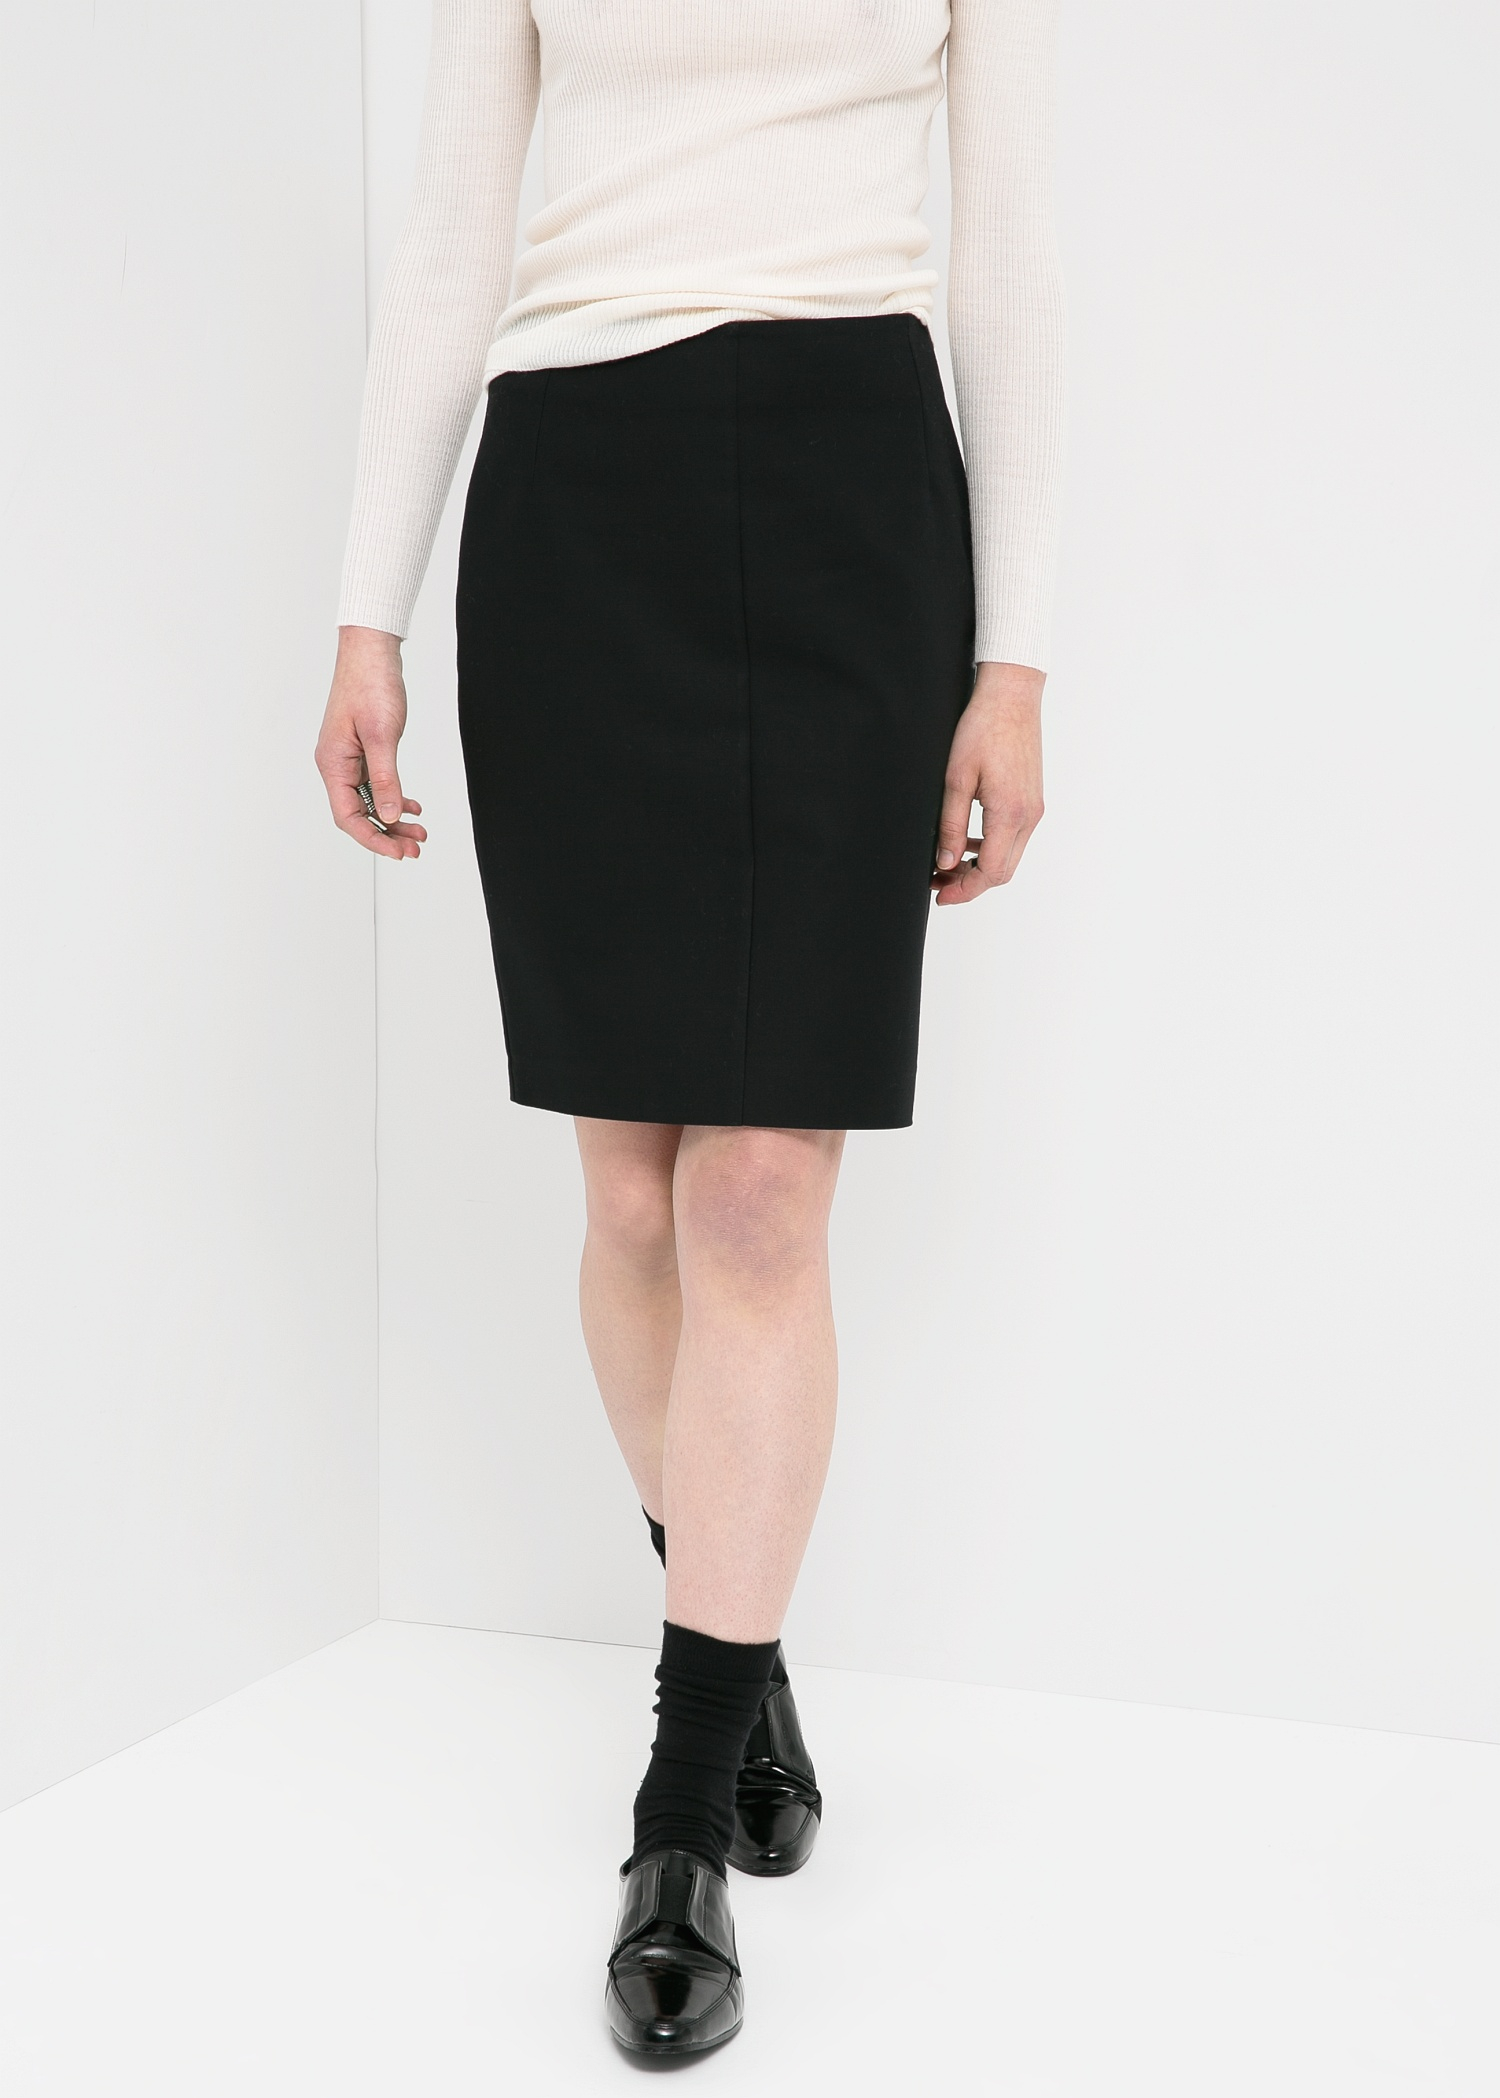 Mango Cotton Pencil Skirt in Black | Lyst